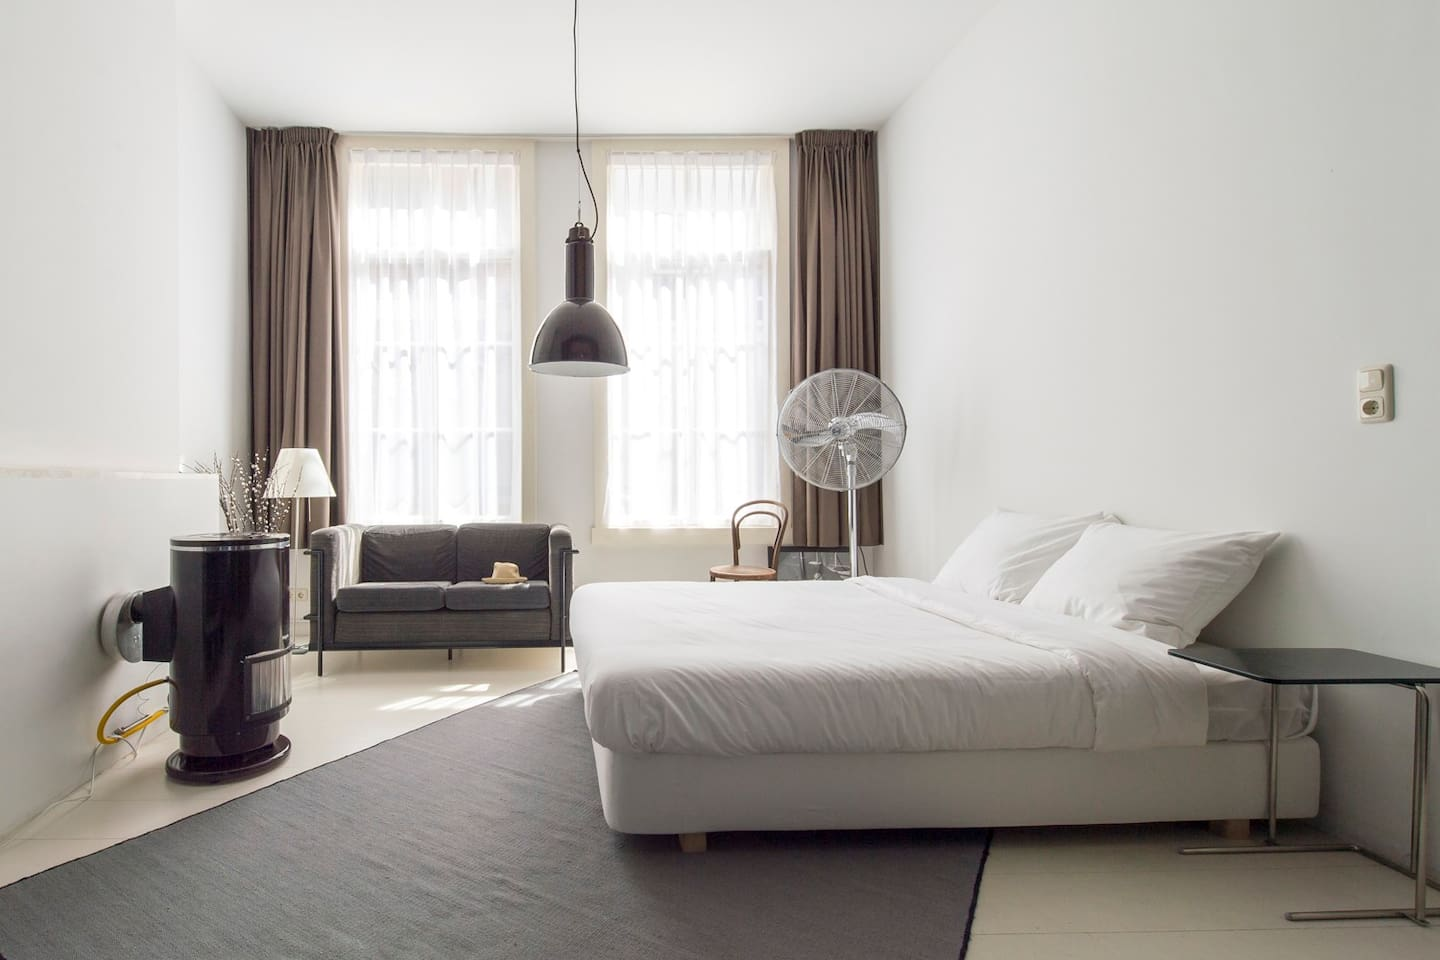 comfortable bed, professional hotel sheets, couch, heating, white painted real wood floor, carpet, lamp